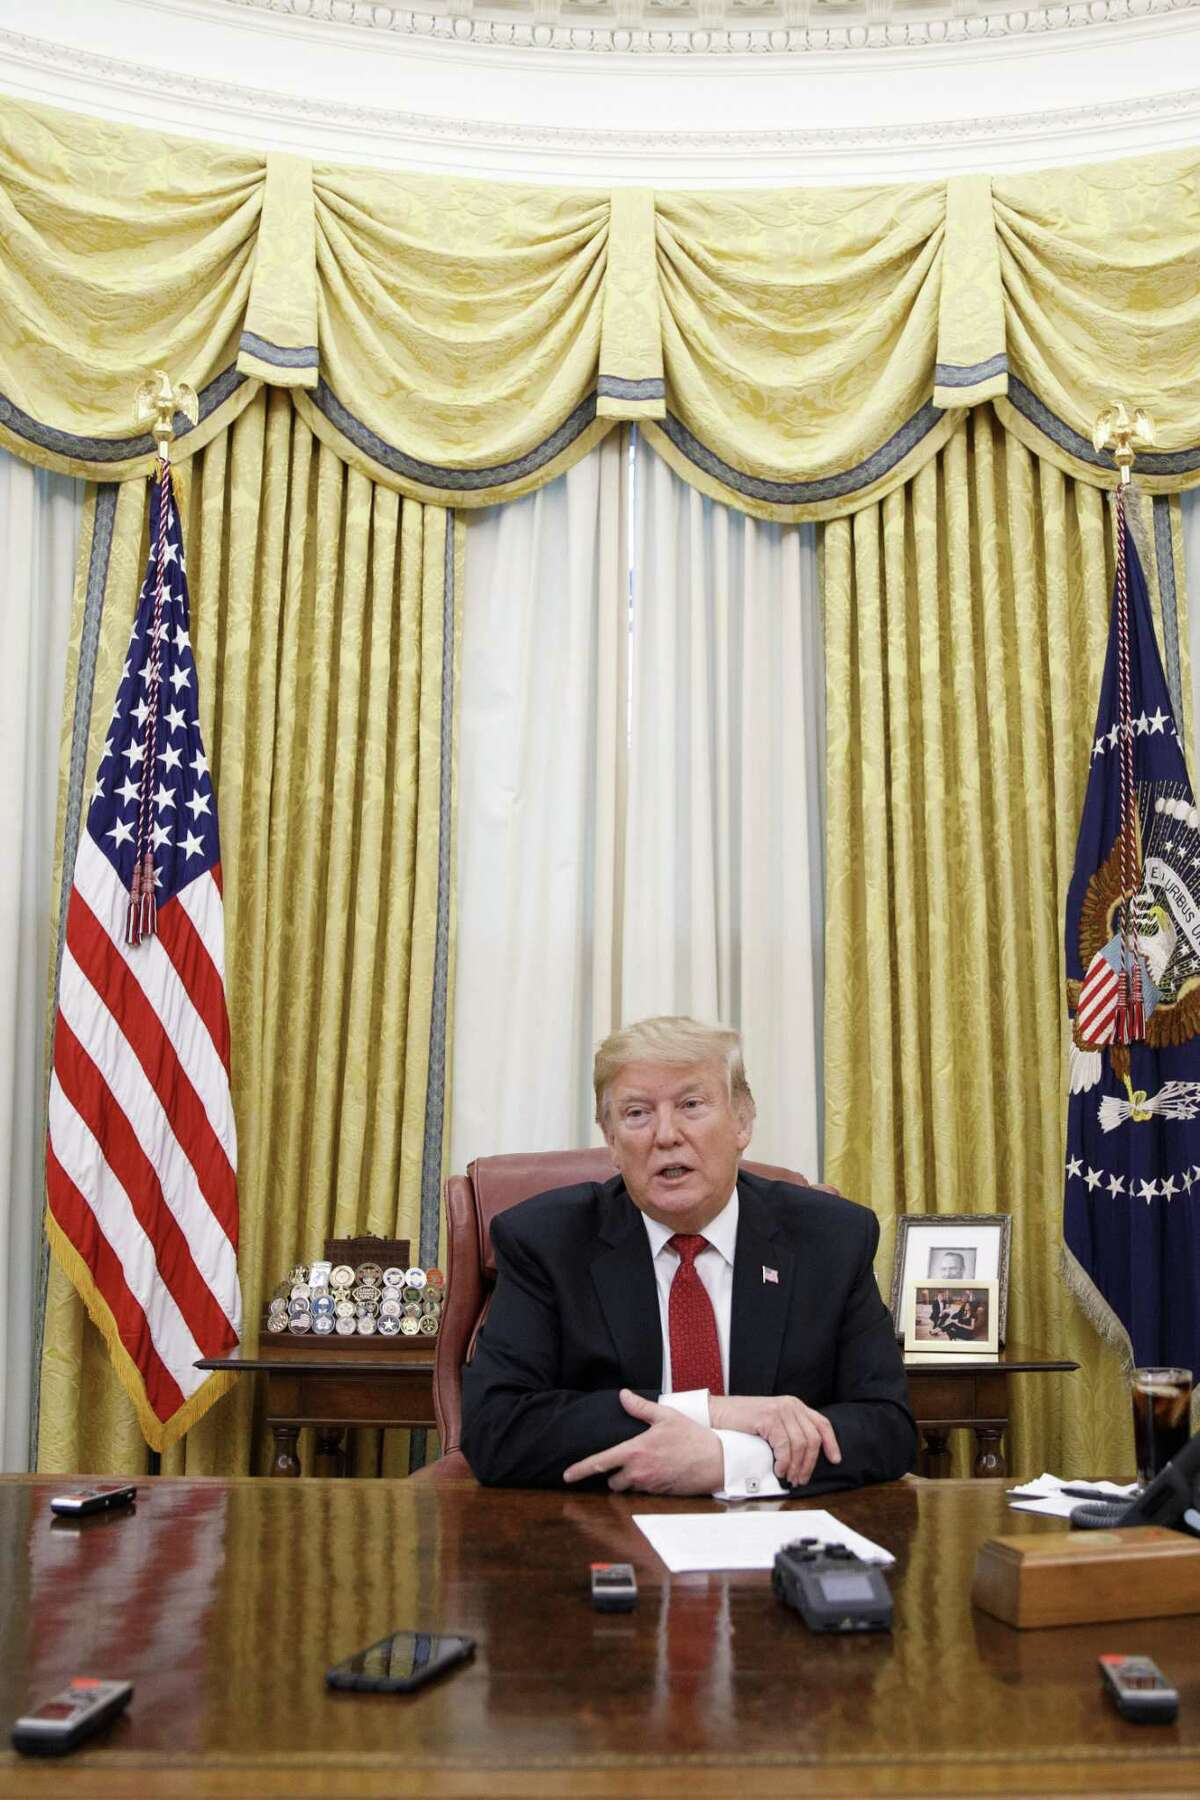 President Donald Trump speaks to reporters from The New York Times in the Oval Office, at the White House in Washington, Jan. 31, 2019. A defiant Trump declared here that he has all but given up on negotiations with Congress over his border wall and will proceed without lawmakers, but would not directly say that he plans to declare a national emergency.